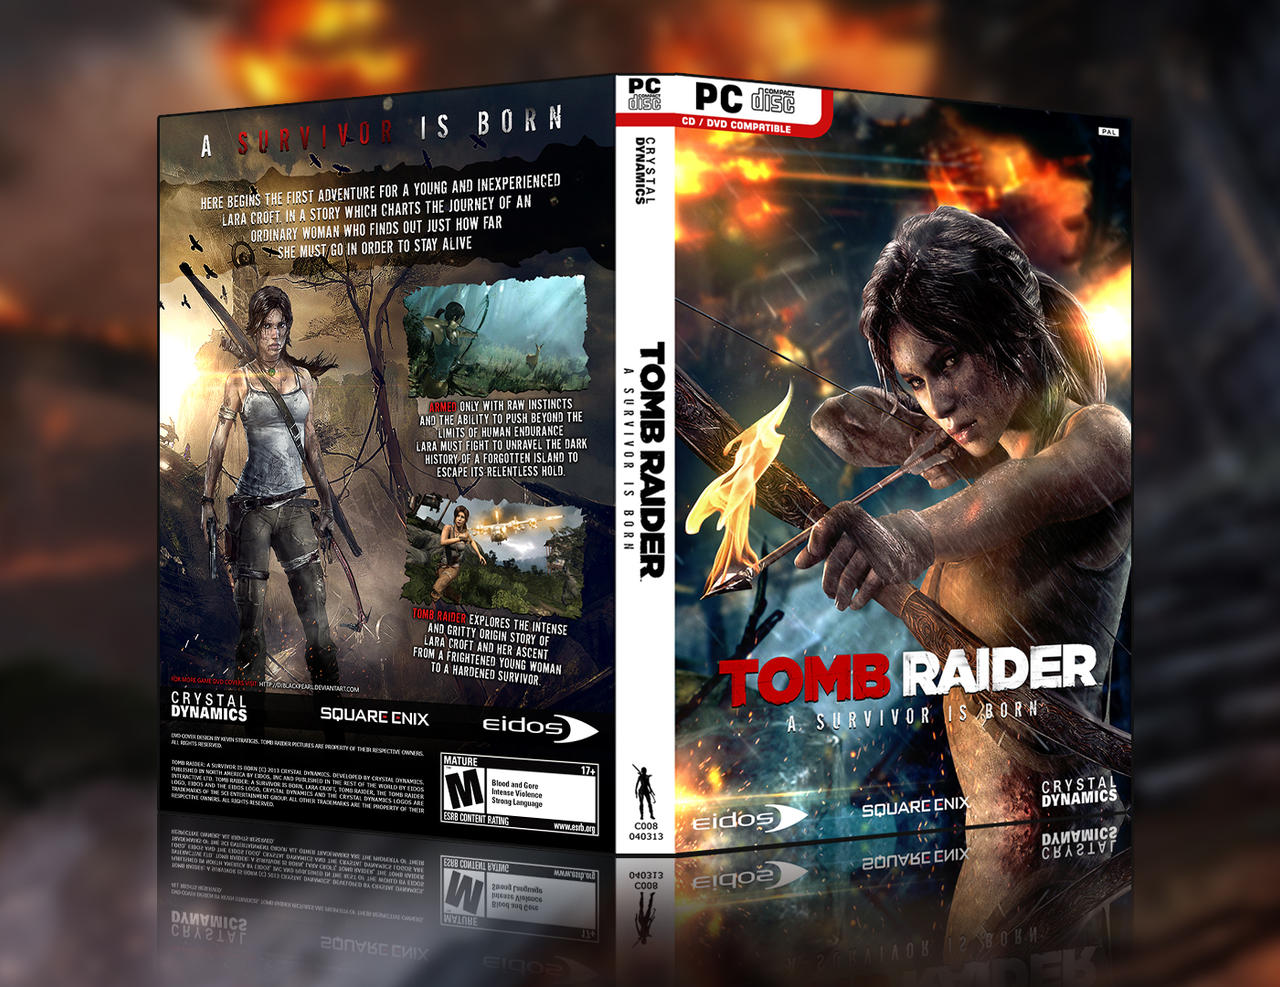 Tomb Raider: A Survivor Is Born - HD Custom Cover by Djblackpearl